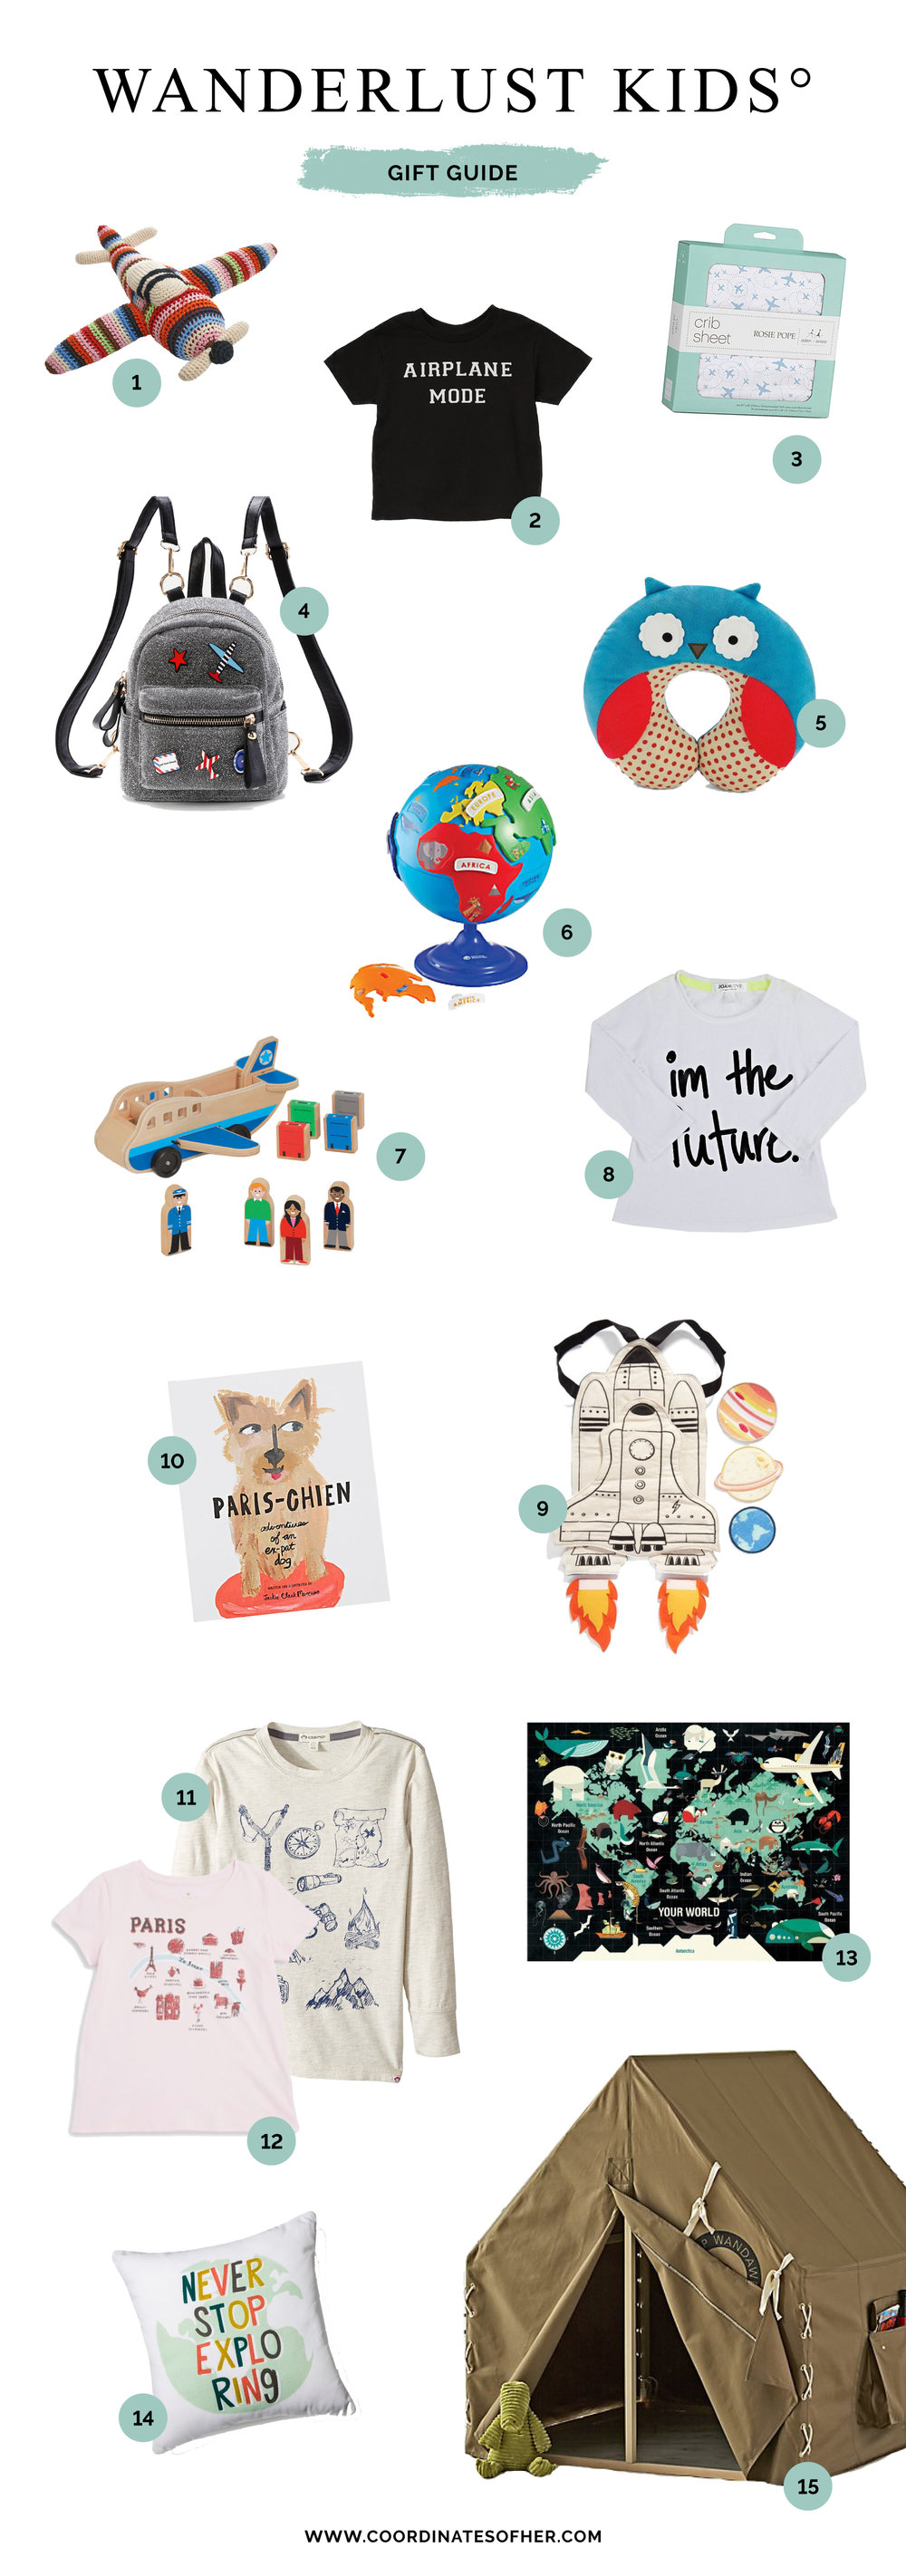 KIDS° TRAVEL GIFT GUIDE.jpg